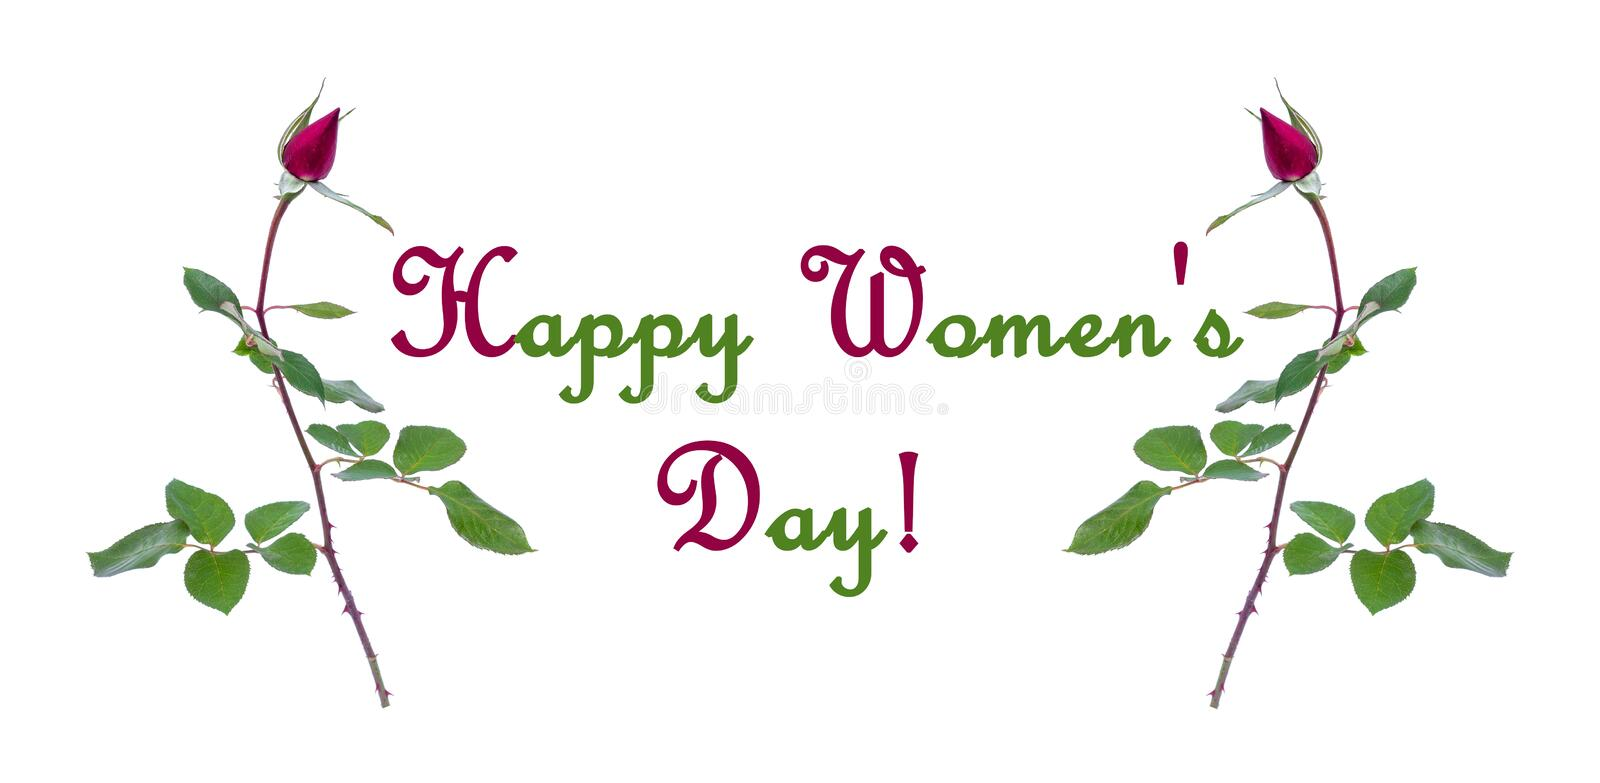 Frame of Burgundy rose buds isolated on white background with words Happy womens day stock image